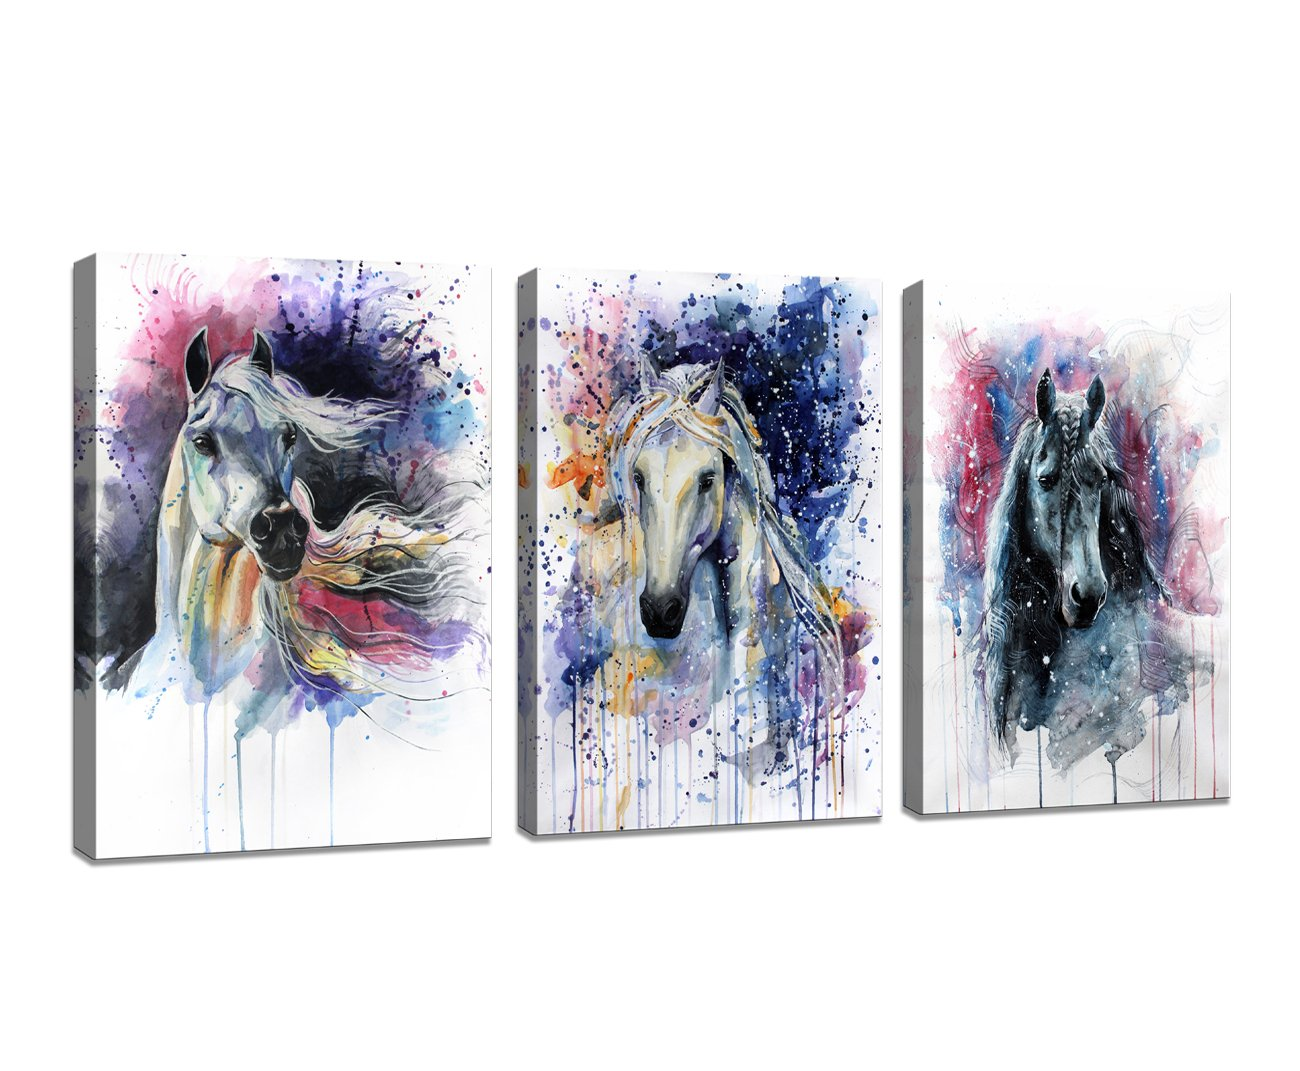 DZL Art D70234 Canvas Wall Art Horse Animal Painting Prints on Canvas Framed Ready to Hang-3 Panels Watercolor Horses Prints Fine Art for Home Wall Decor